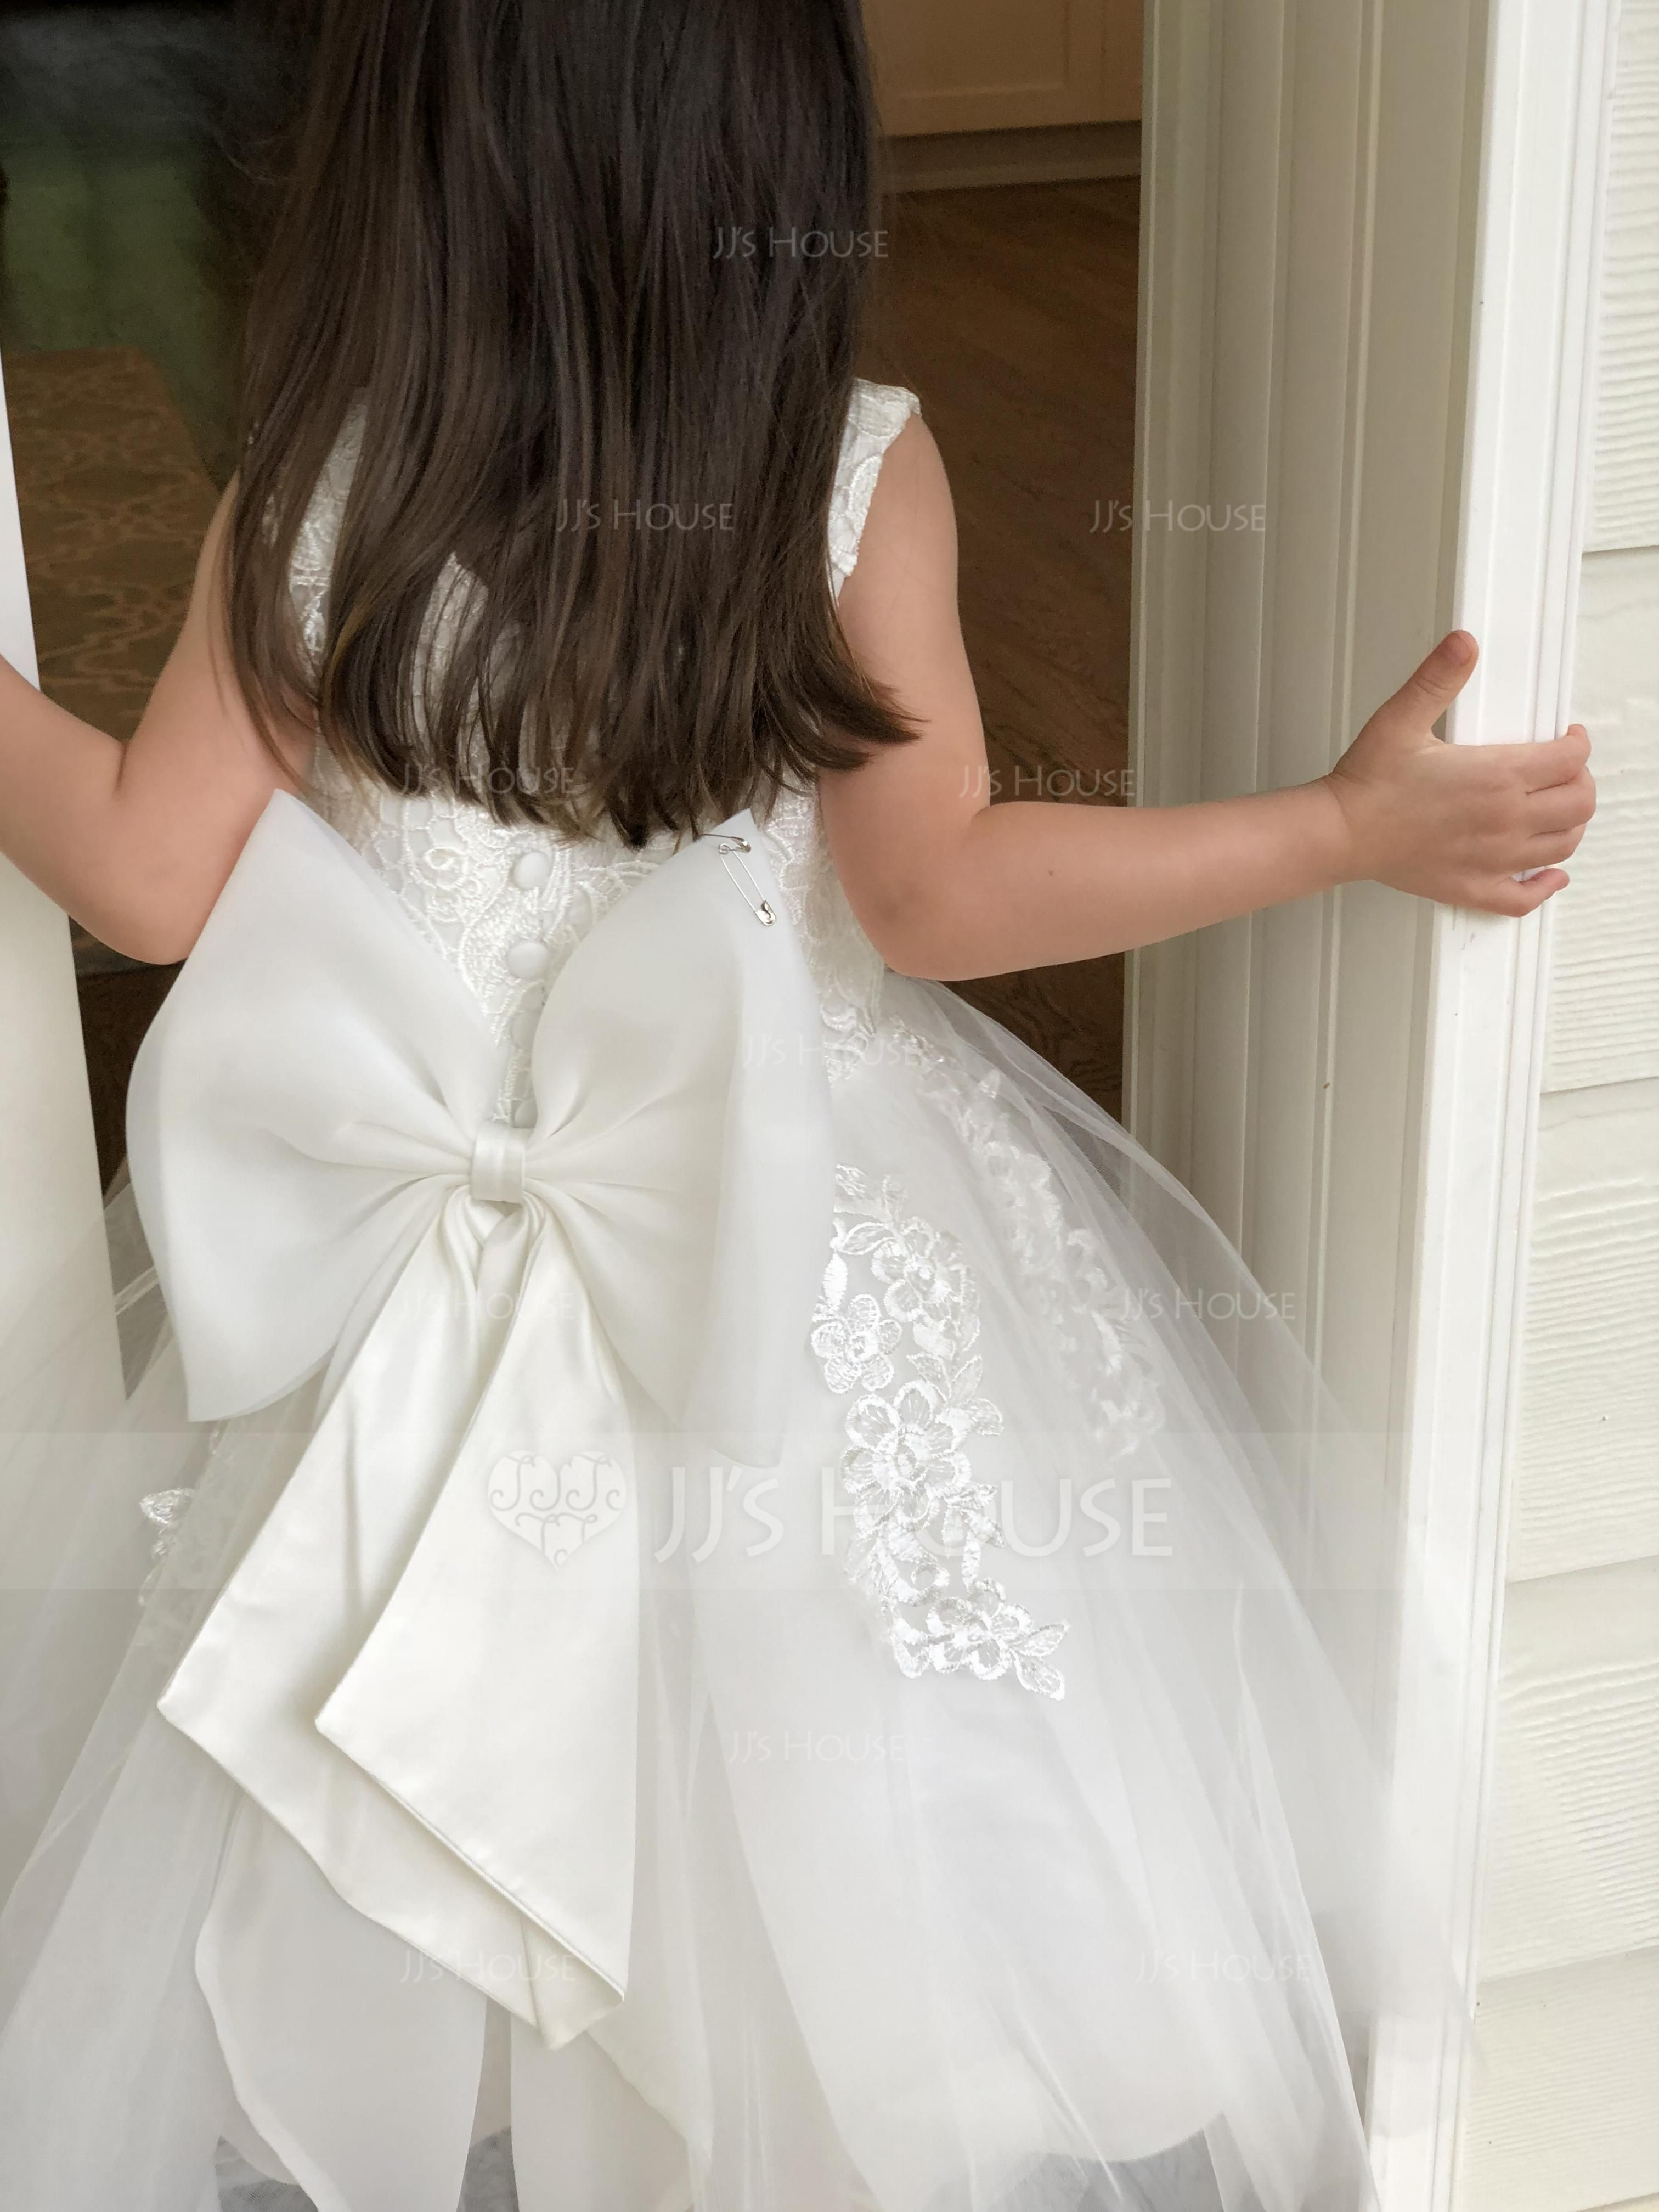 82987ff49 A-Line/Princess Knee-length Flower Girl Dress - Tulle/Lace Sleeveless Scoop  Neck With Lace/Bow(s) (010117689) - JJsHouse